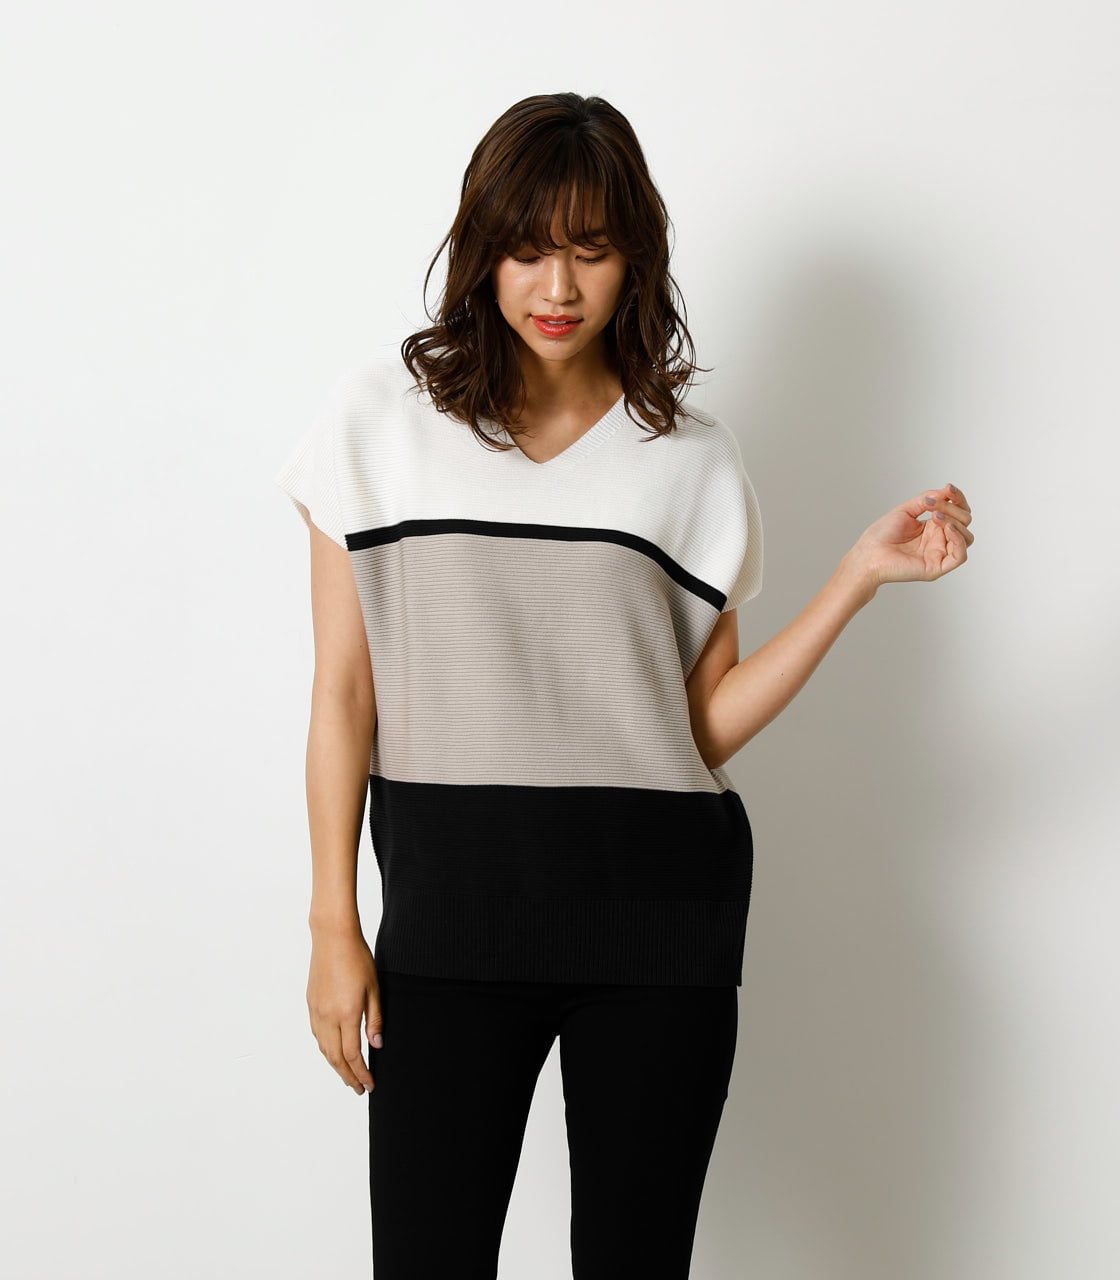 LOOSE PANEL KNIT TOP/ルーズパネルニットトップ 詳細画像 柄BEG 1